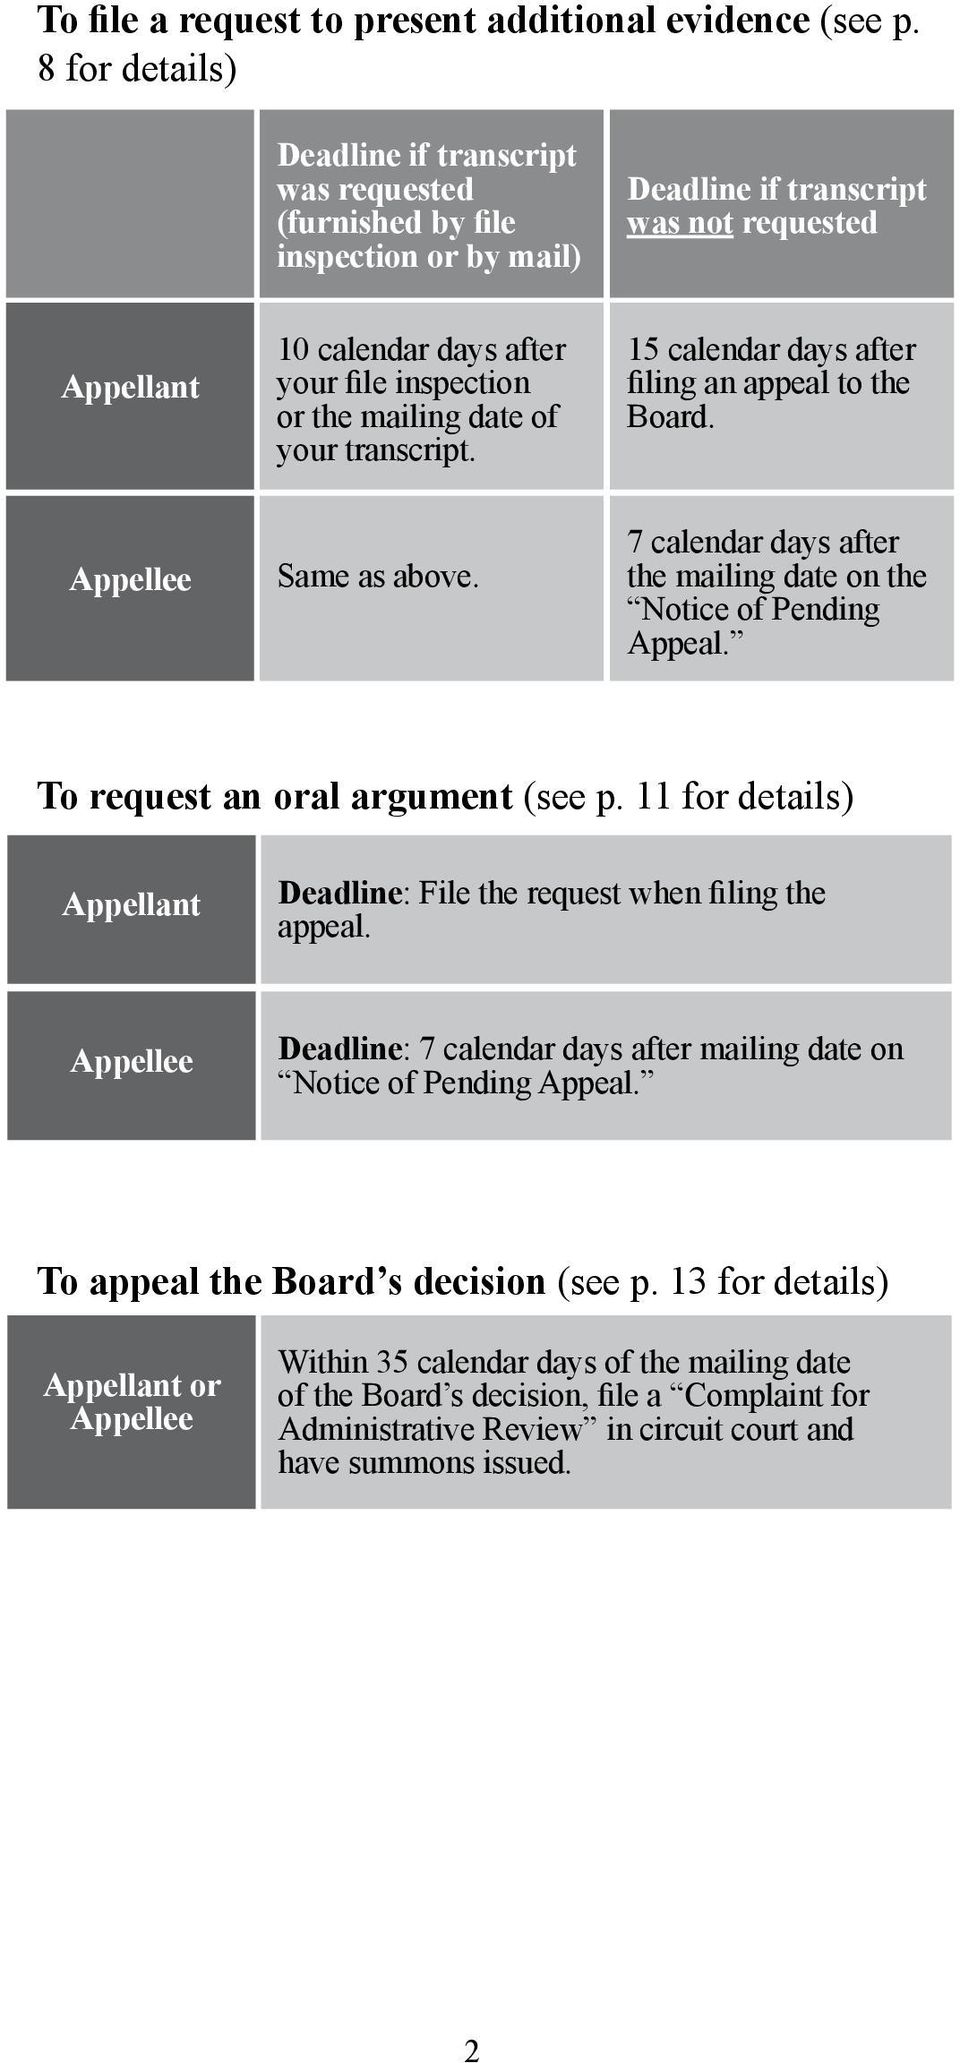 mailing date of your transcript. 15 calendar days after filing an appeal to the Board. Appellee Same as above. 7 calendar days after the mailing date on the Notice of Pending Appeal.